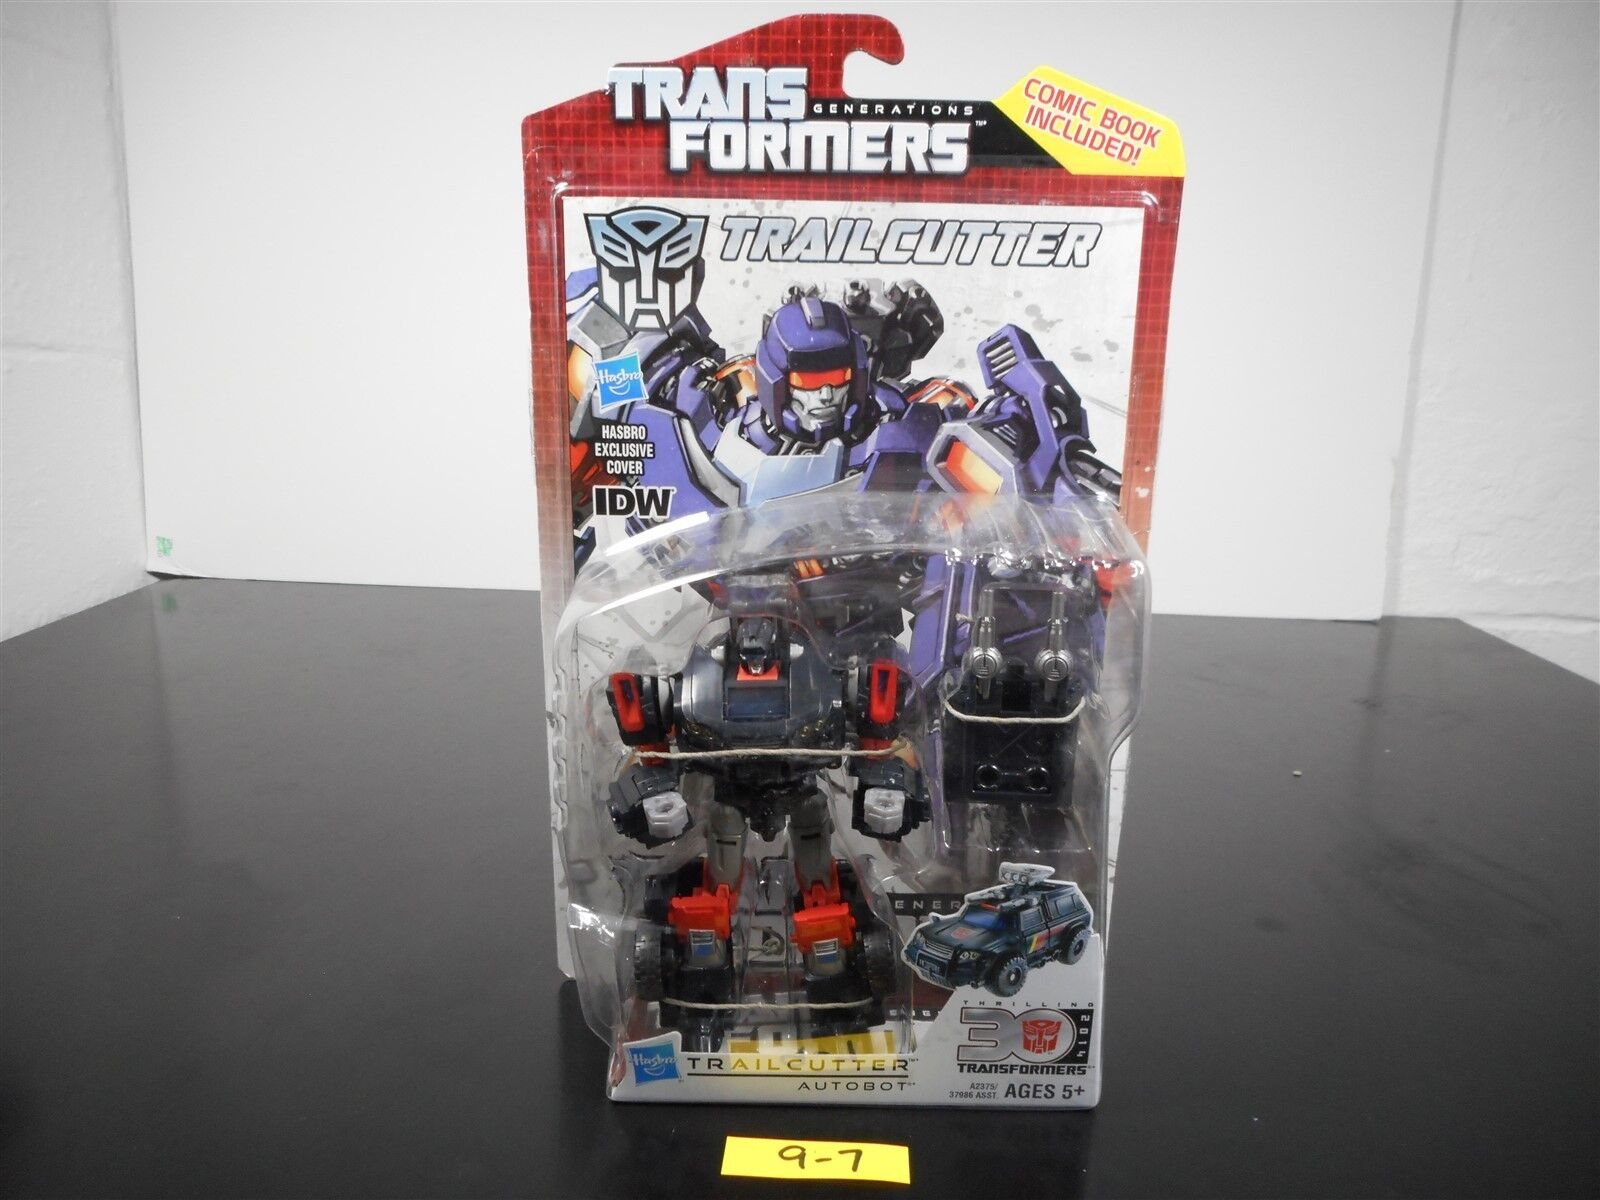 MINT & SEALED    TRANSFORMERS GENERATIONS IDW TRAILCUTTER THRILLING 30 COMIC 9-7